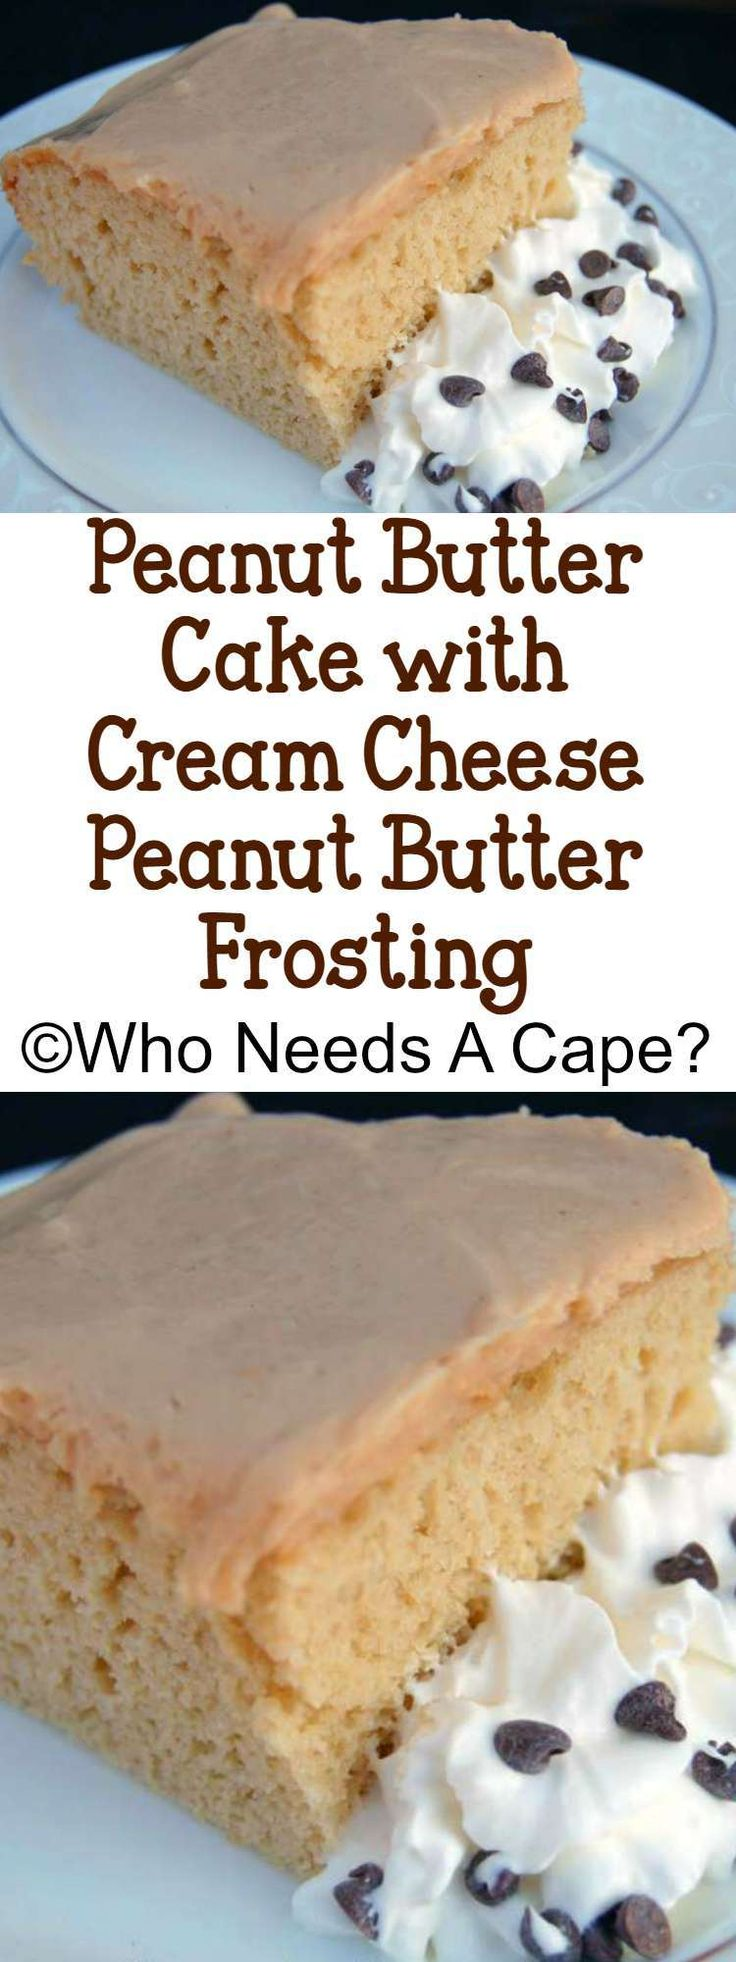 This Peanut Butter Cake with Cream Cheese Peanut Butter Frosting will ...